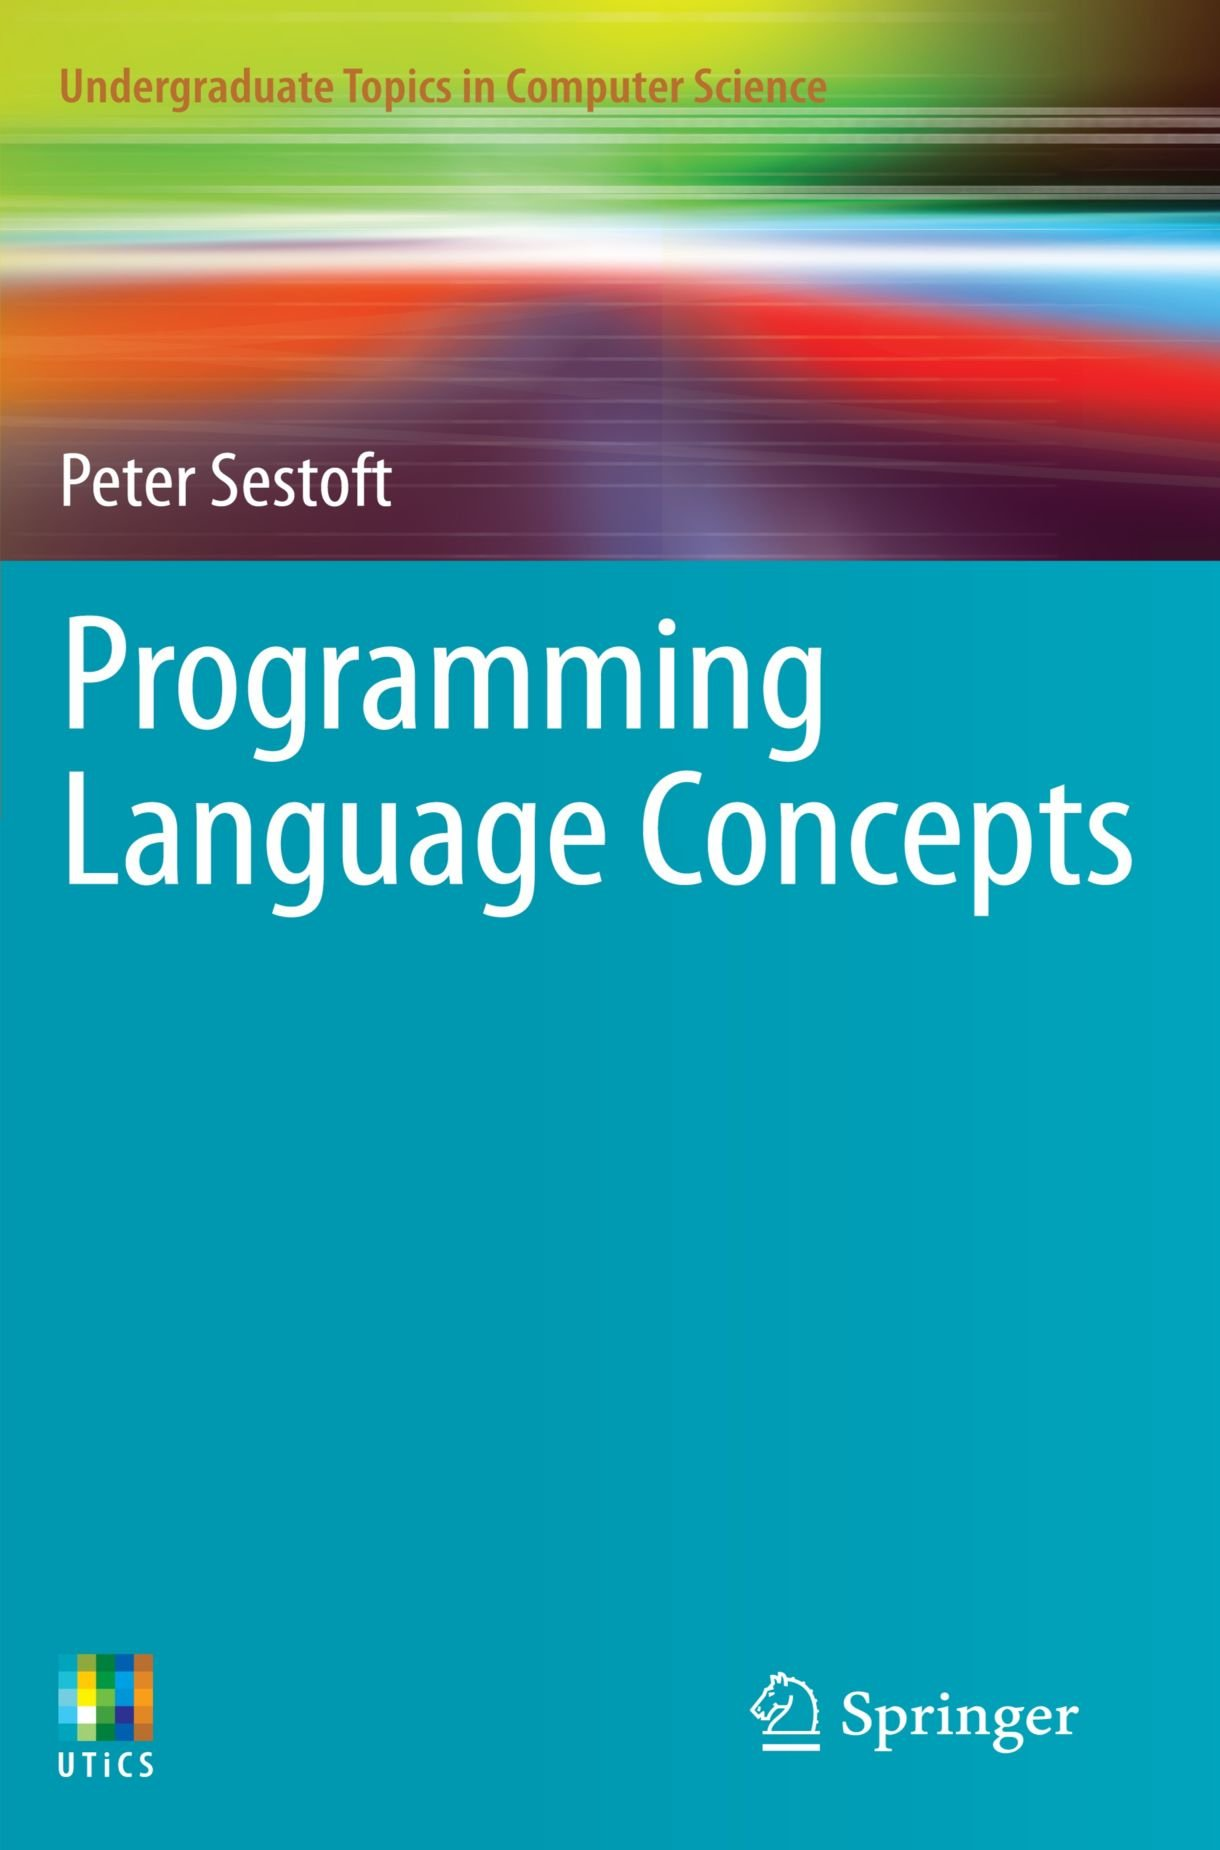 Programming Language Concepts (Undergraduate Topics in Computer Science) by Brand: Springer